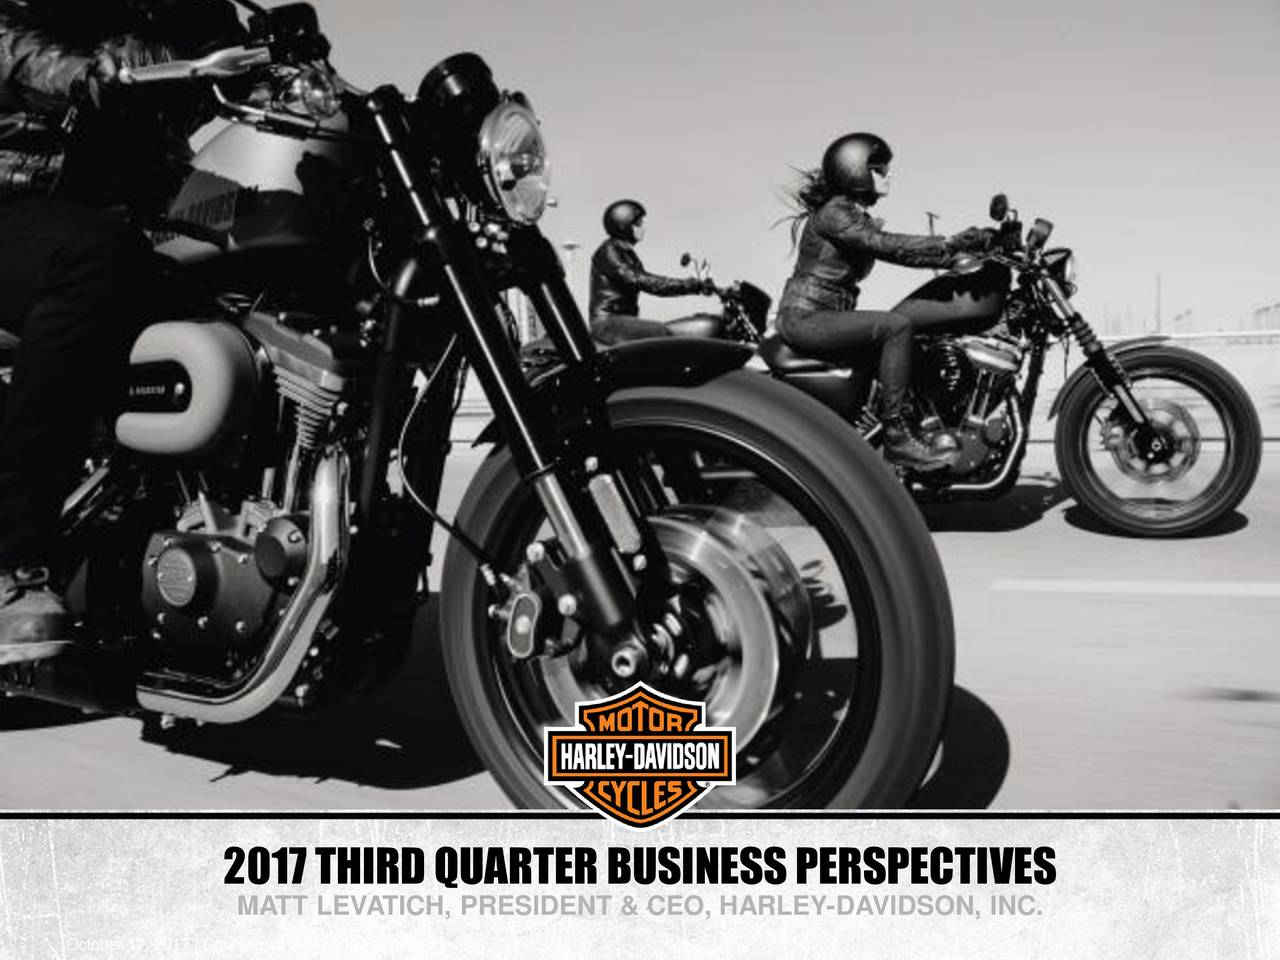 global economy and strategic plan of harley davidson inc A detailed brand analysis of harley-davidson, inc includes its 4 p's of marketing | swot analysis | pest analysis | marketing strategy and strategic.